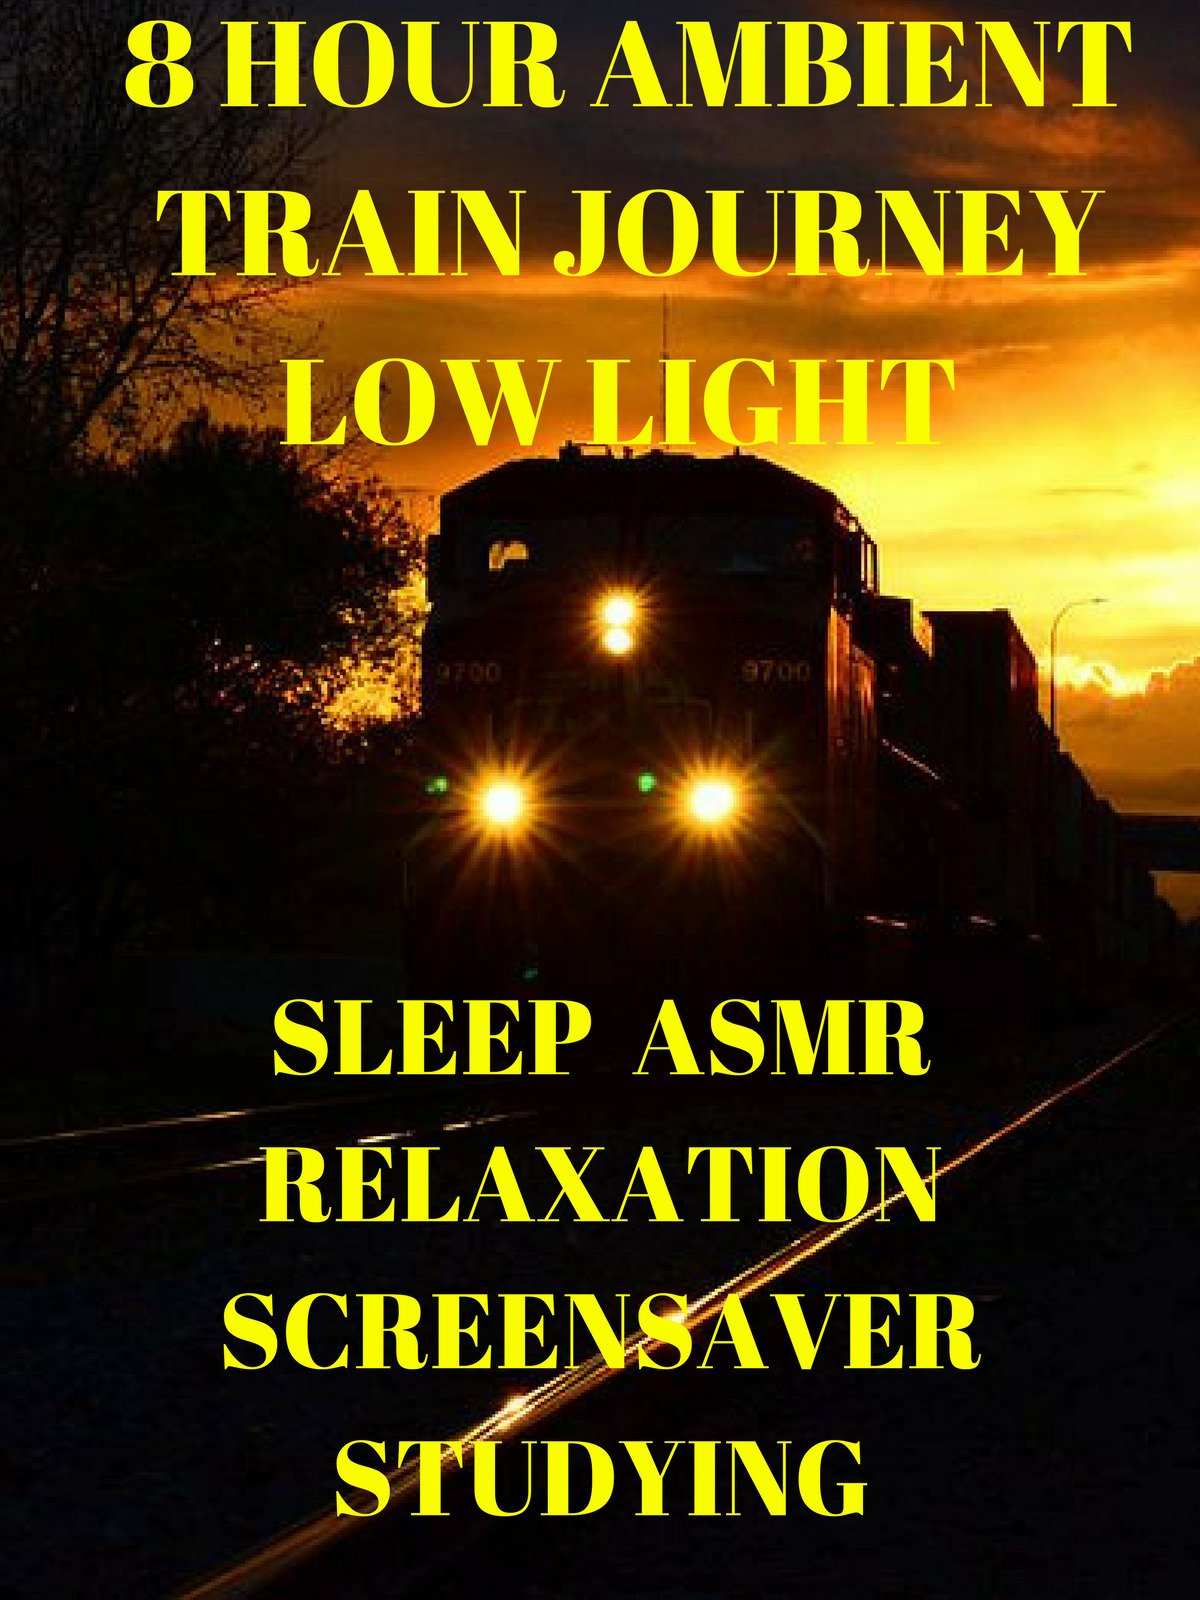 Ambient train journey 8 hour low light sleep ASMR relaxation studying screensaver